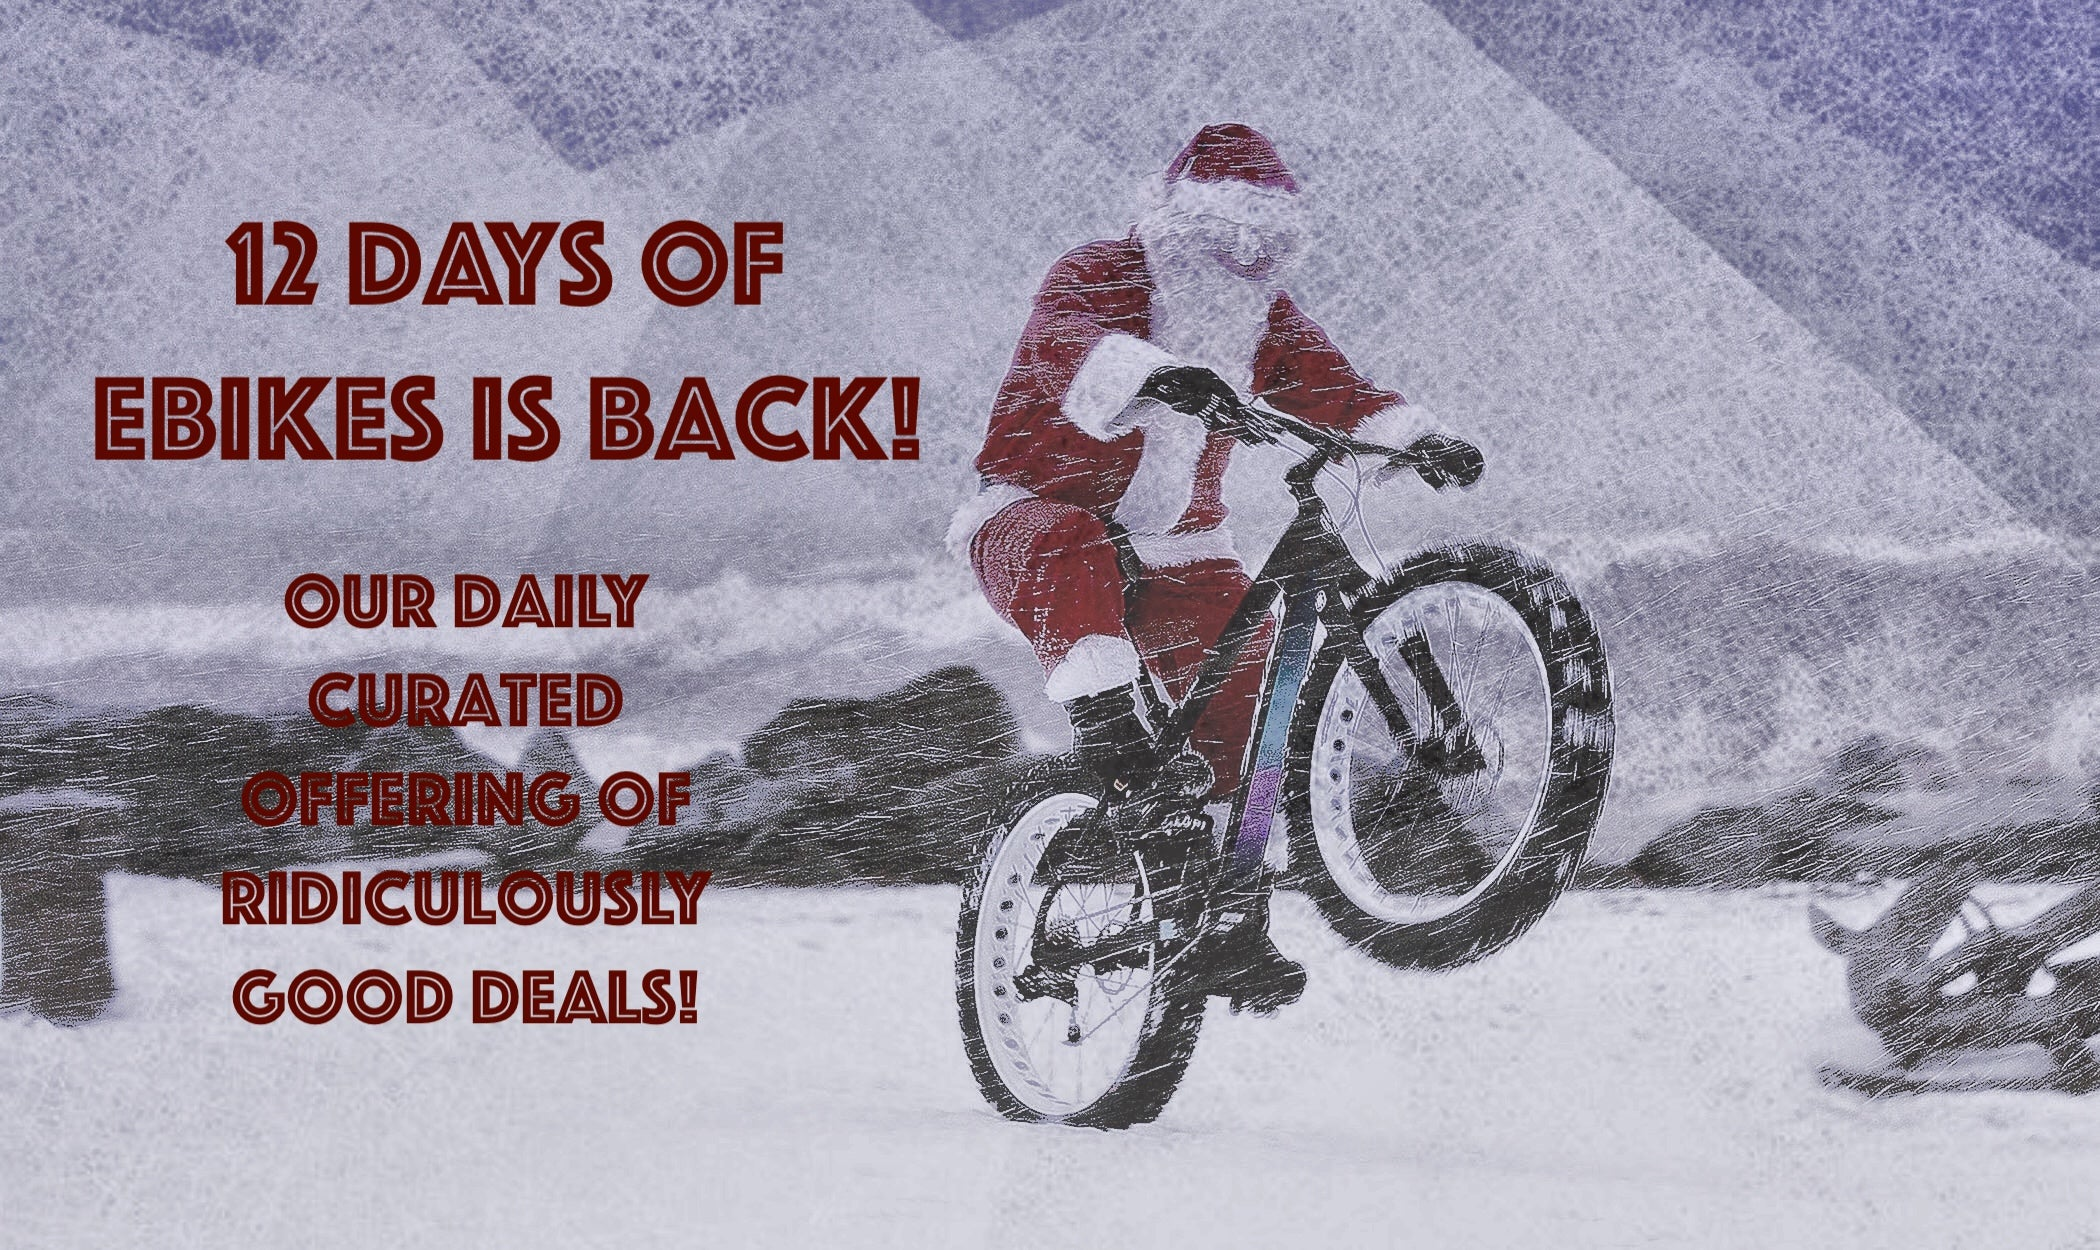 electric bikes on sale this Christmas